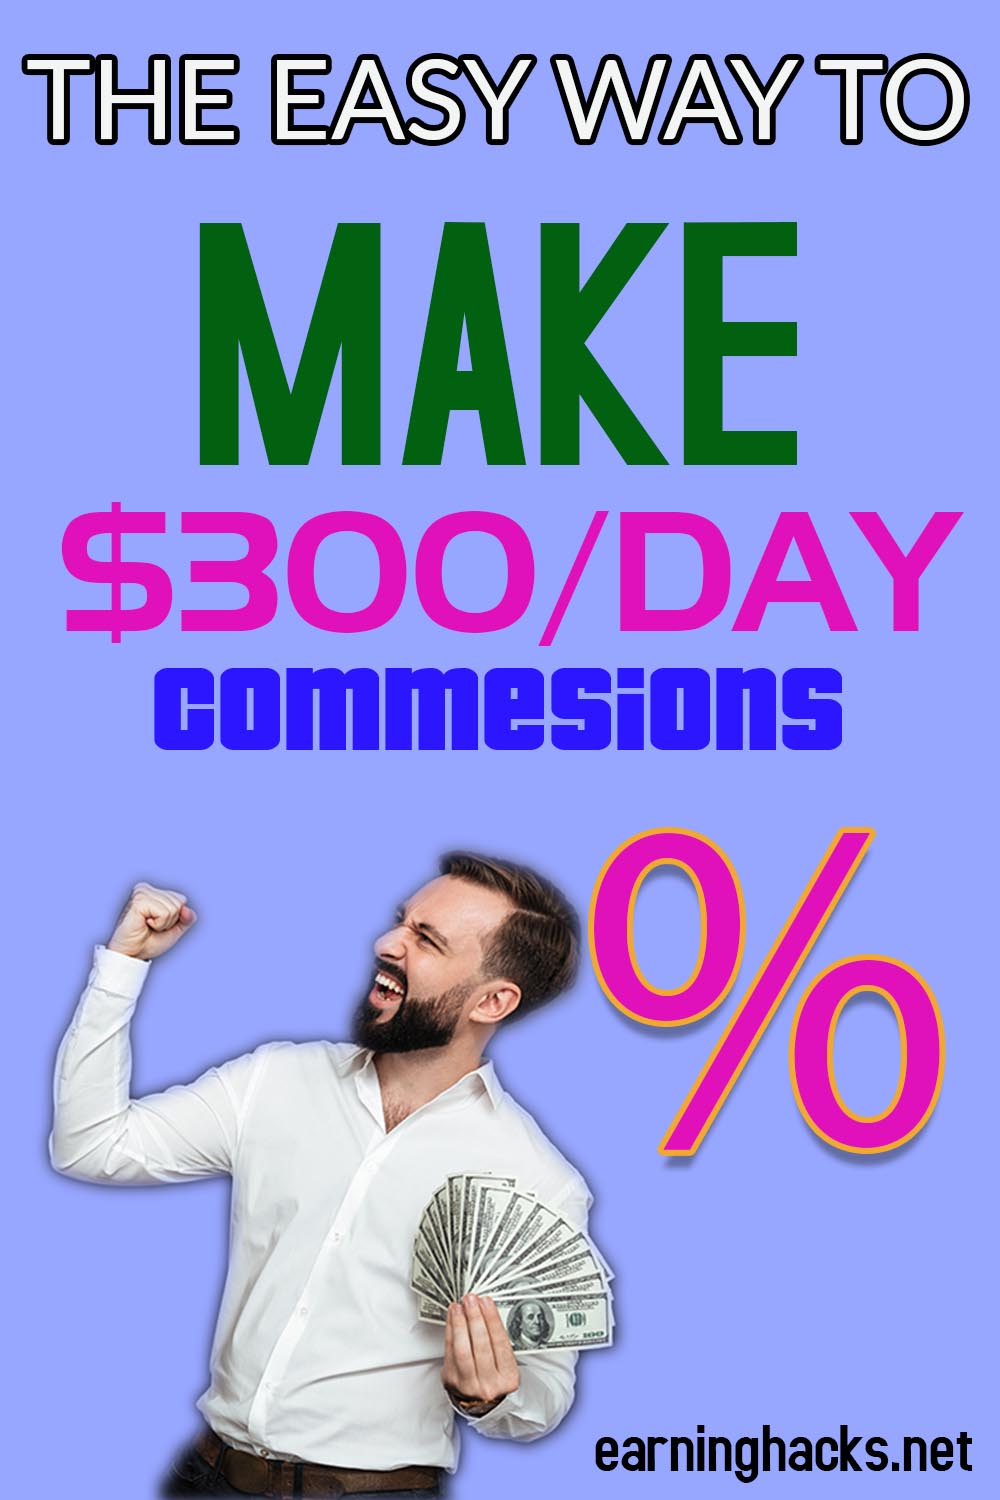 The Easy Way To Make $300 / day Commissions